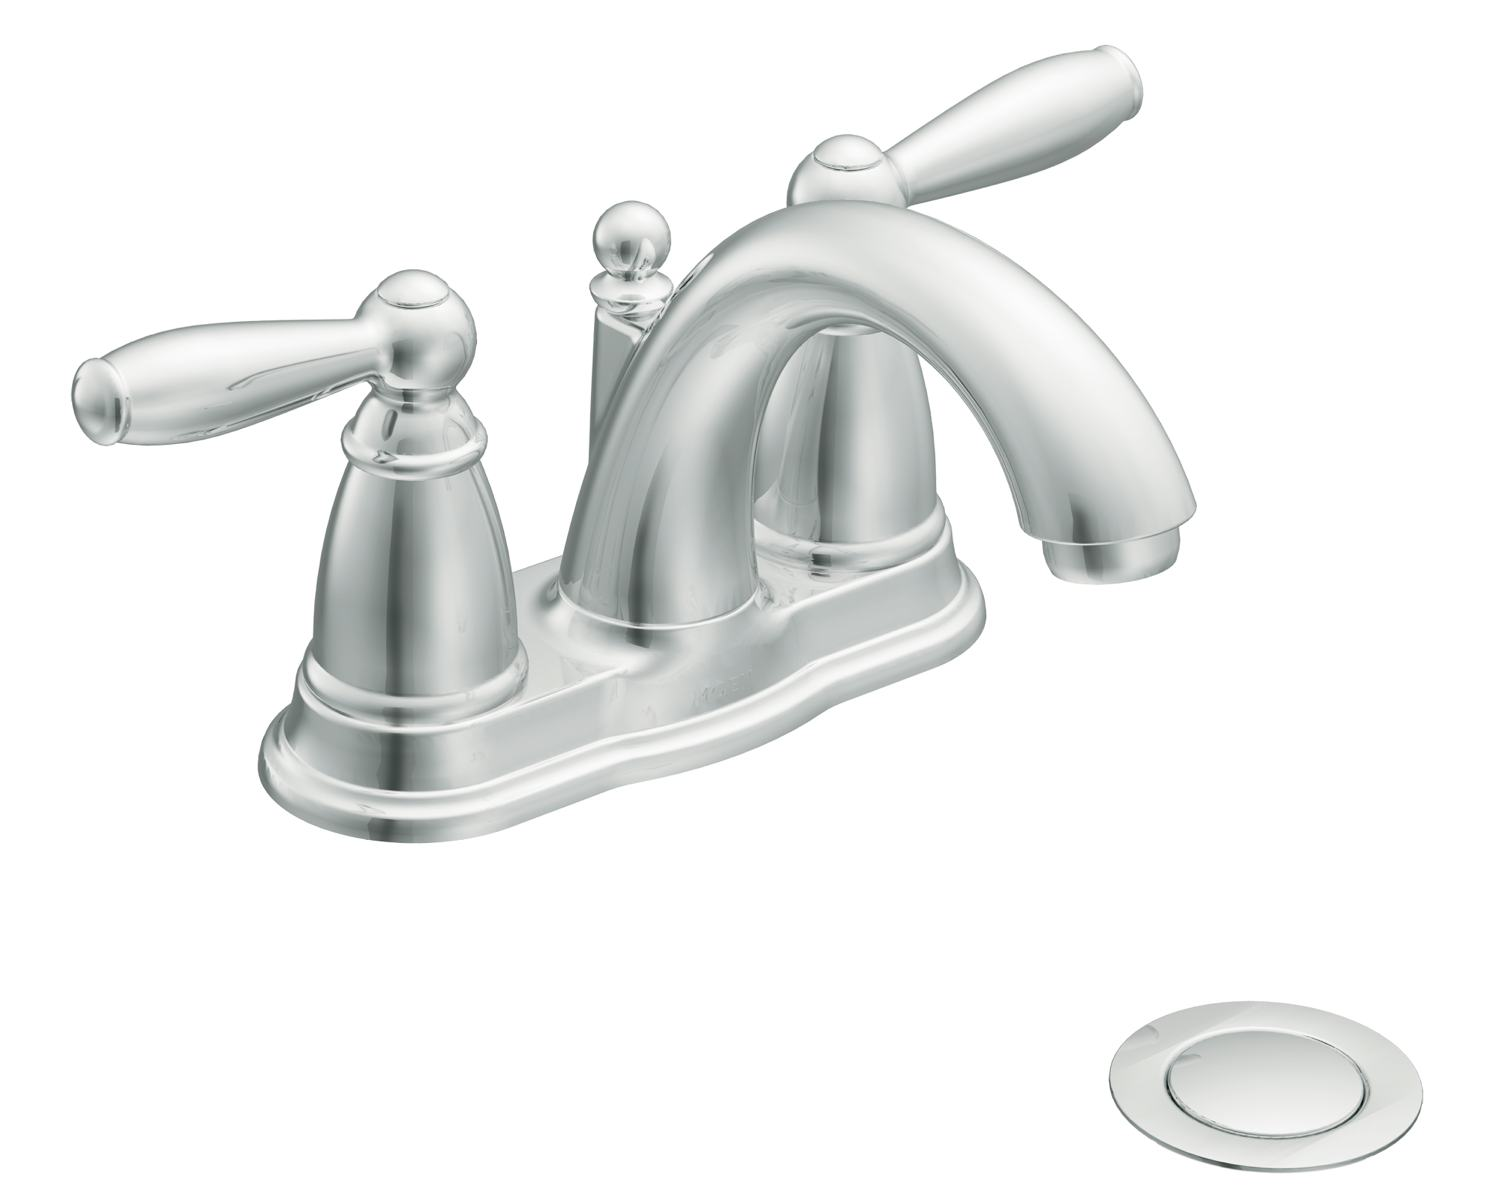 Moen 6610 brantford two handle low arc centerset bathroom faucet with drain assembly chrome Amazon bathroom faucets moen